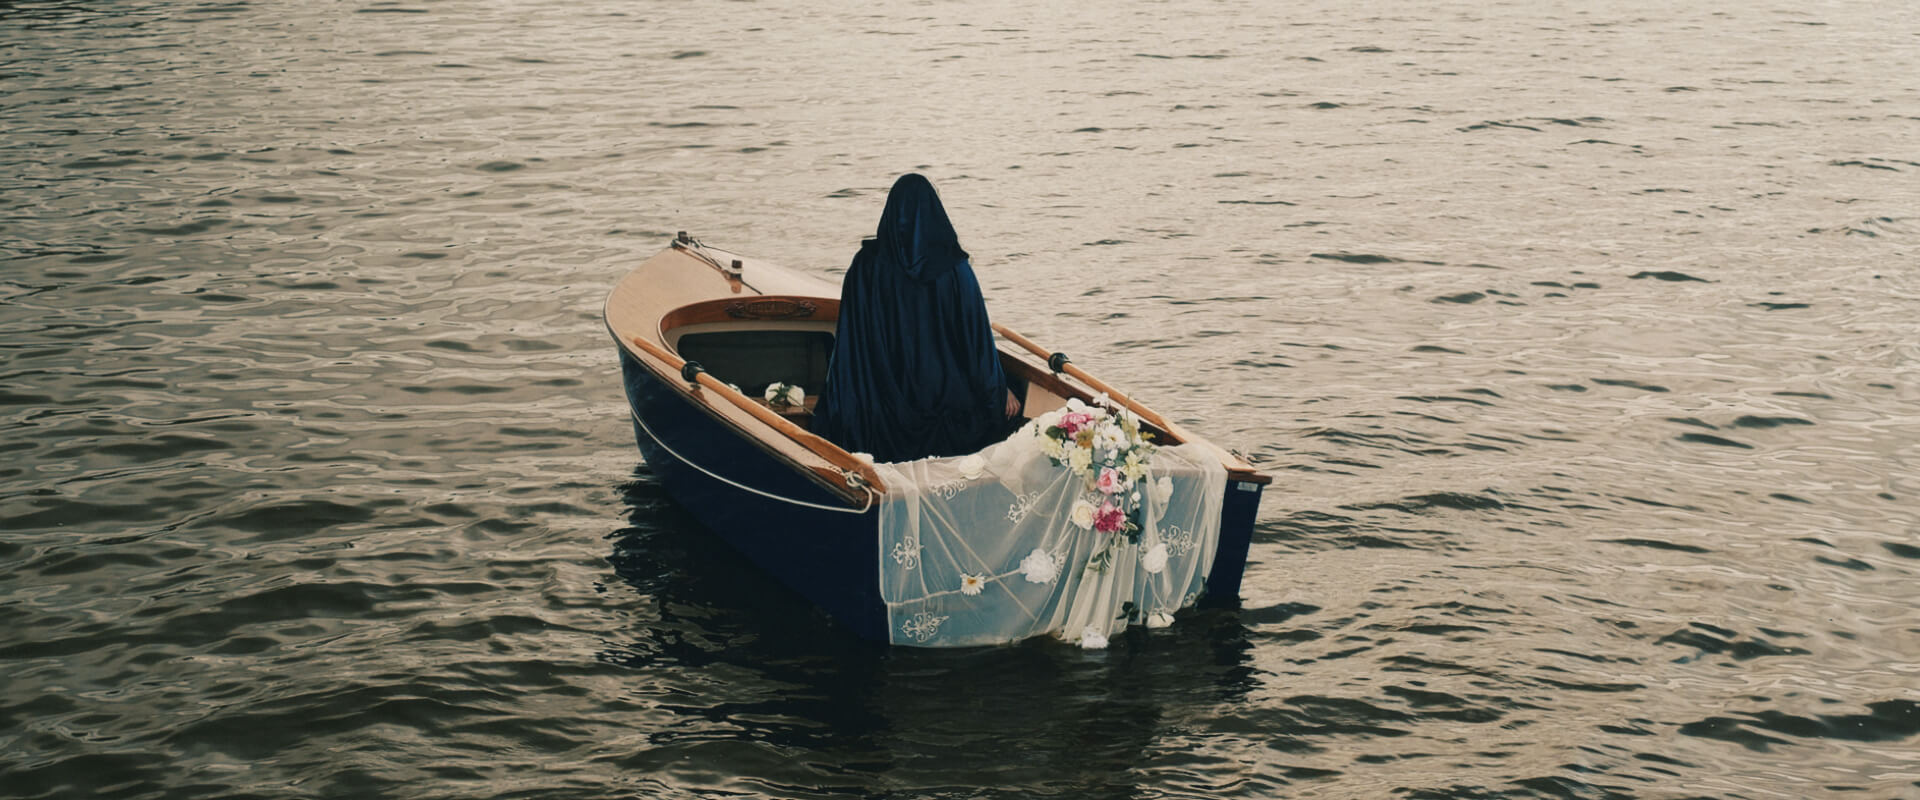 Aminah Hughes' New Music Video 'Blue Wooden Boat'